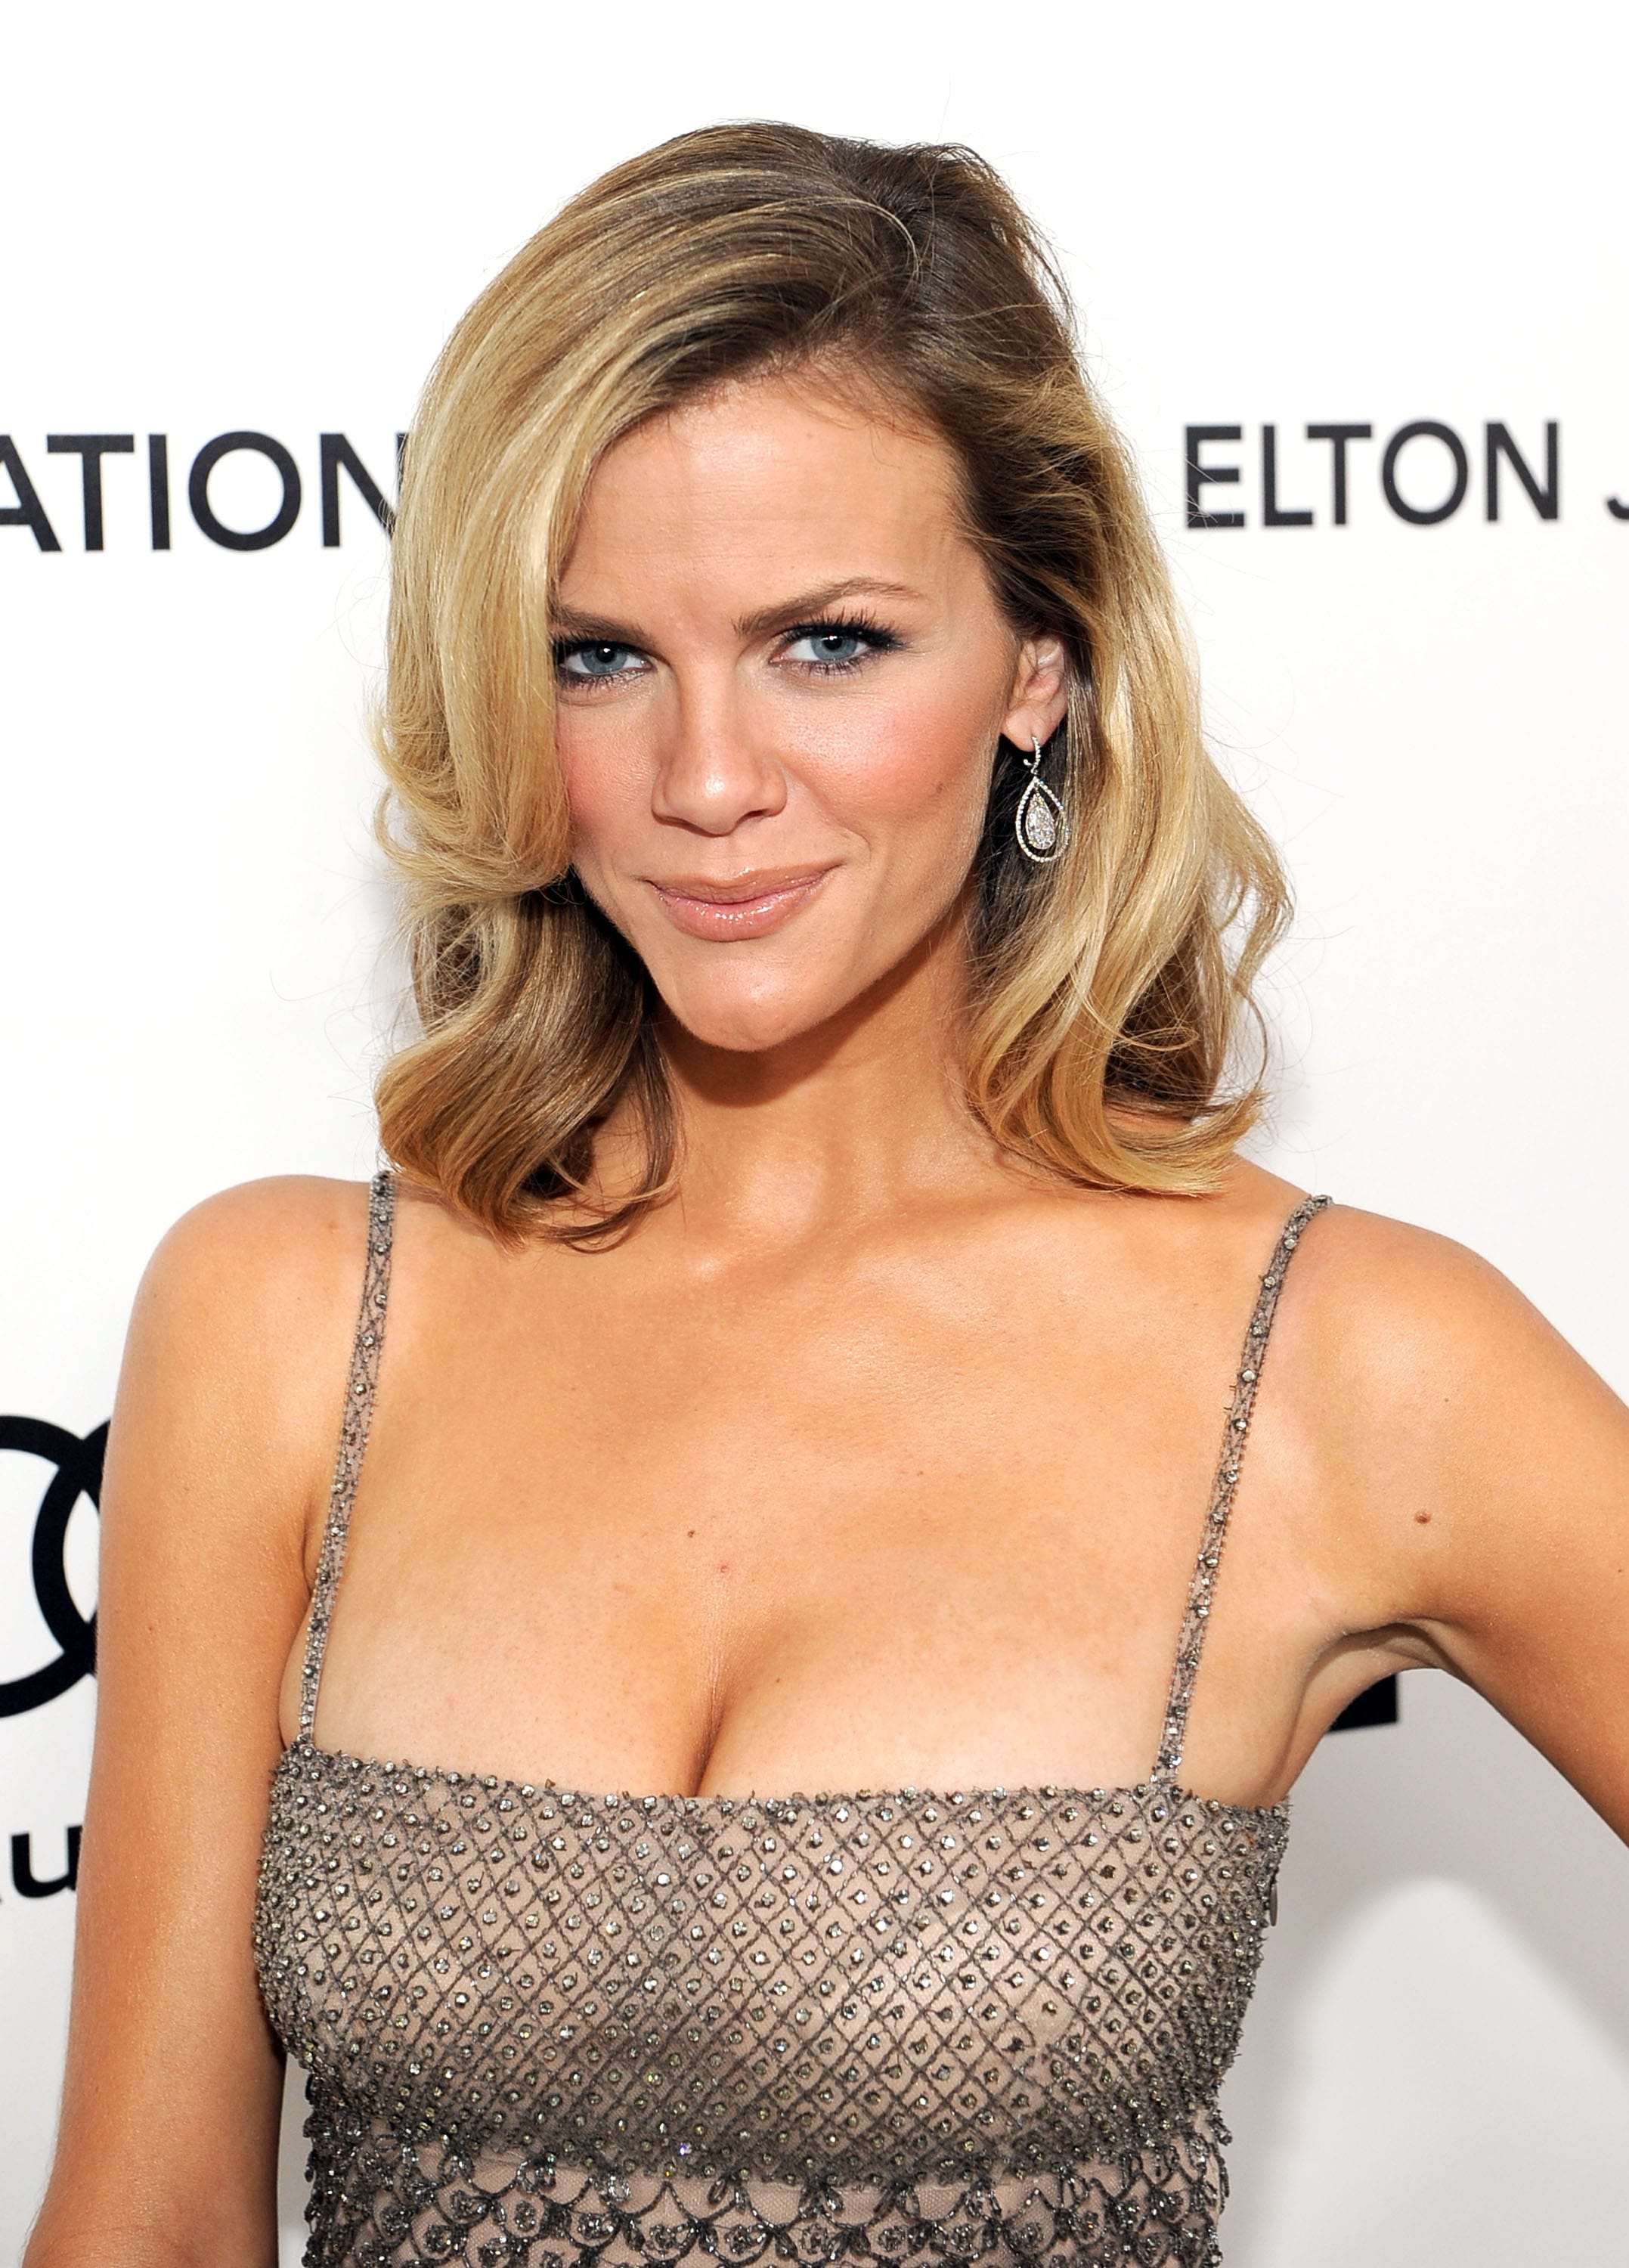 Brooklyn Decker Wallpapers hd